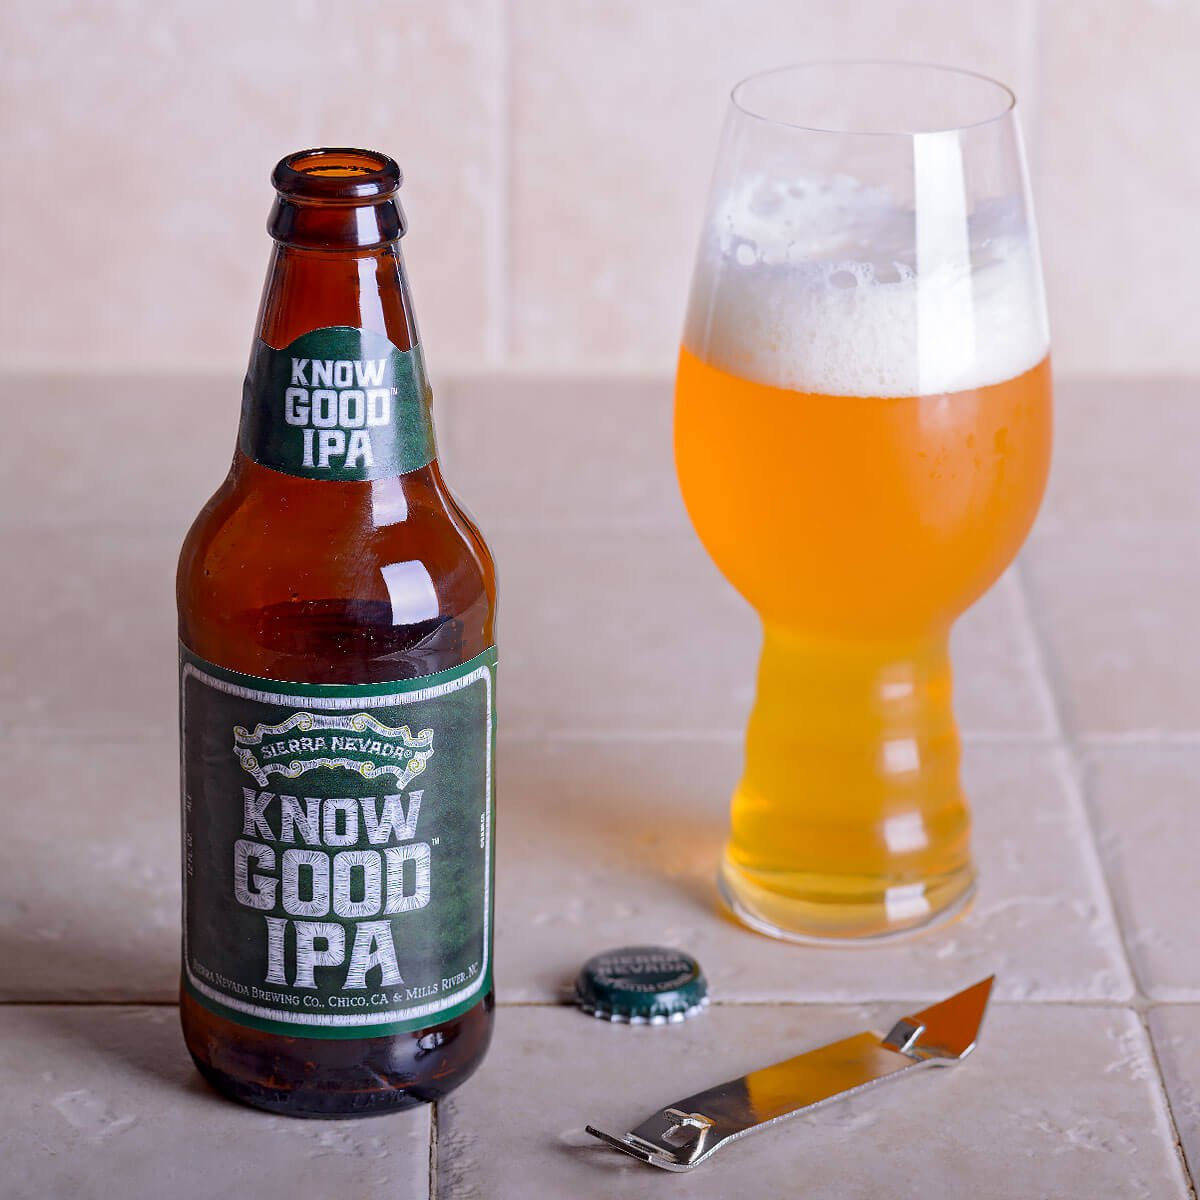 Know Good IPA, an American IPA by Sierra Nevada Brewing Co.